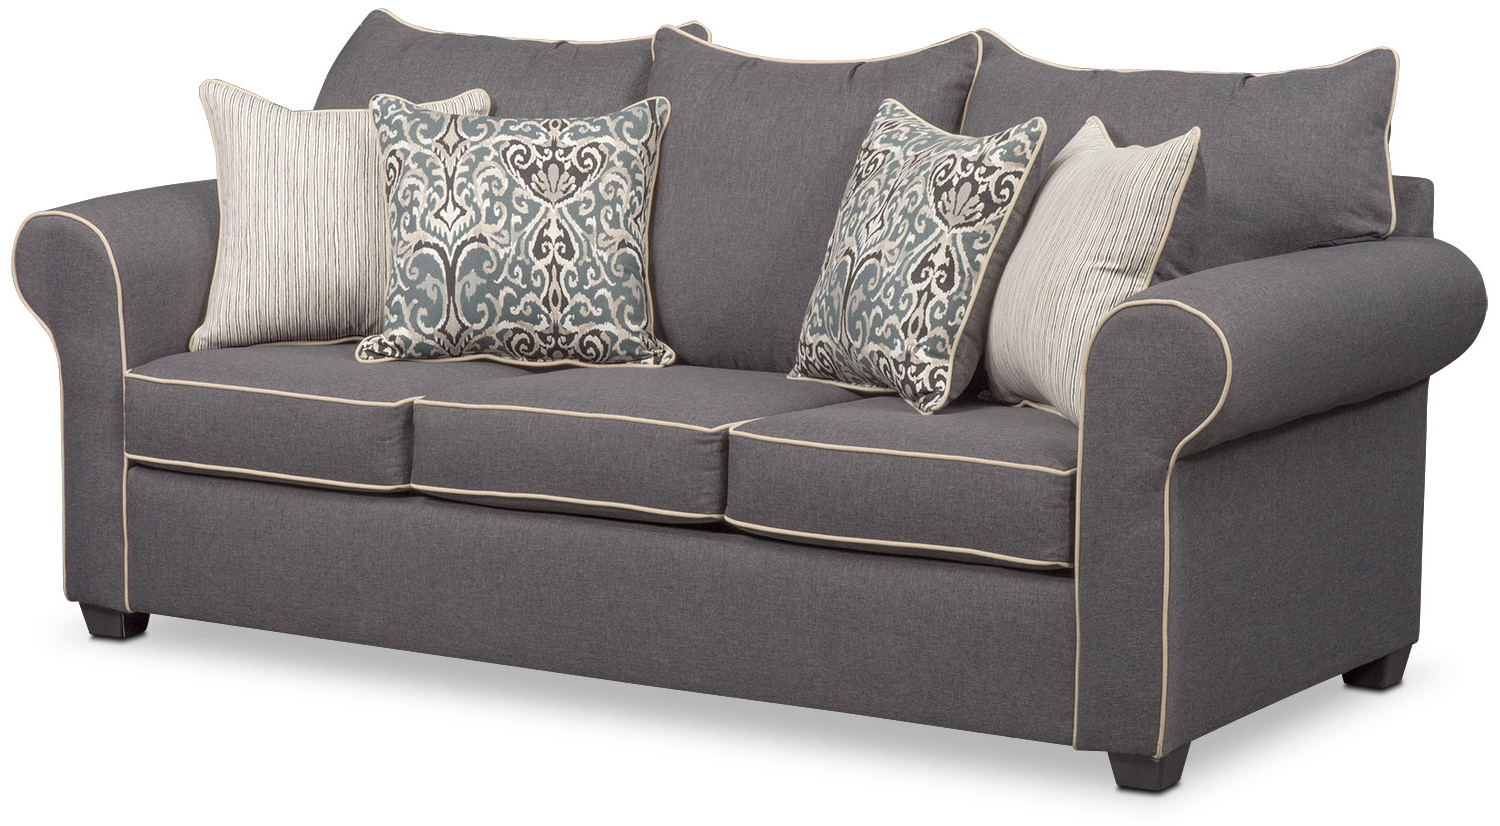 Fashionable Carla Queen Innerspring Sleeper Sofa, Loveseat, And Chair Set For Sofa Loveseat And Chairs (Gallery 12 of 20)